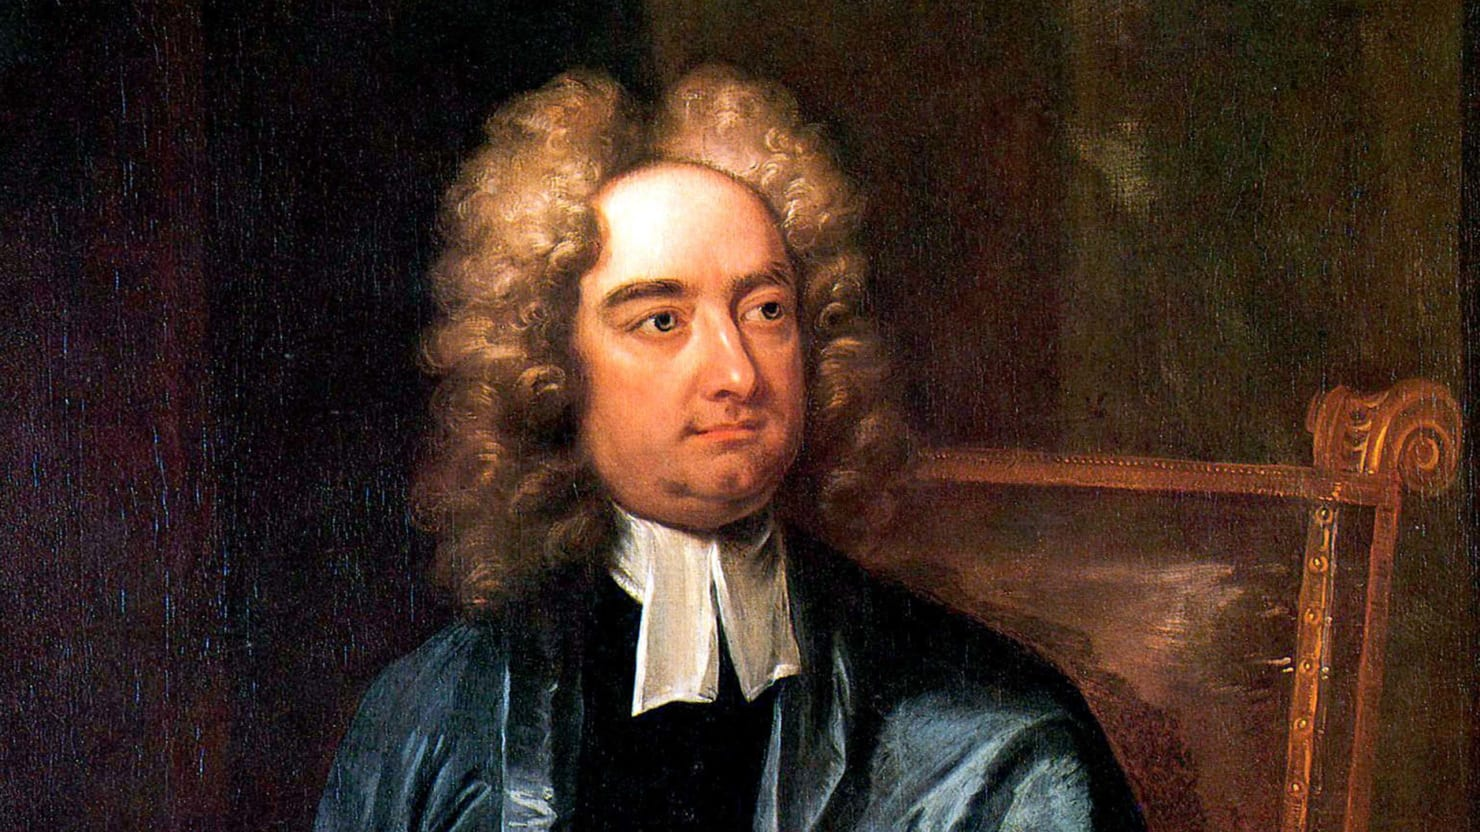 satire in jonathan swifts gullivers travels Jonathan swift: his life and his world - leo damrosch: may 14, 2014 - duration: 1:15:43 the kansas city public library 11,548 views.